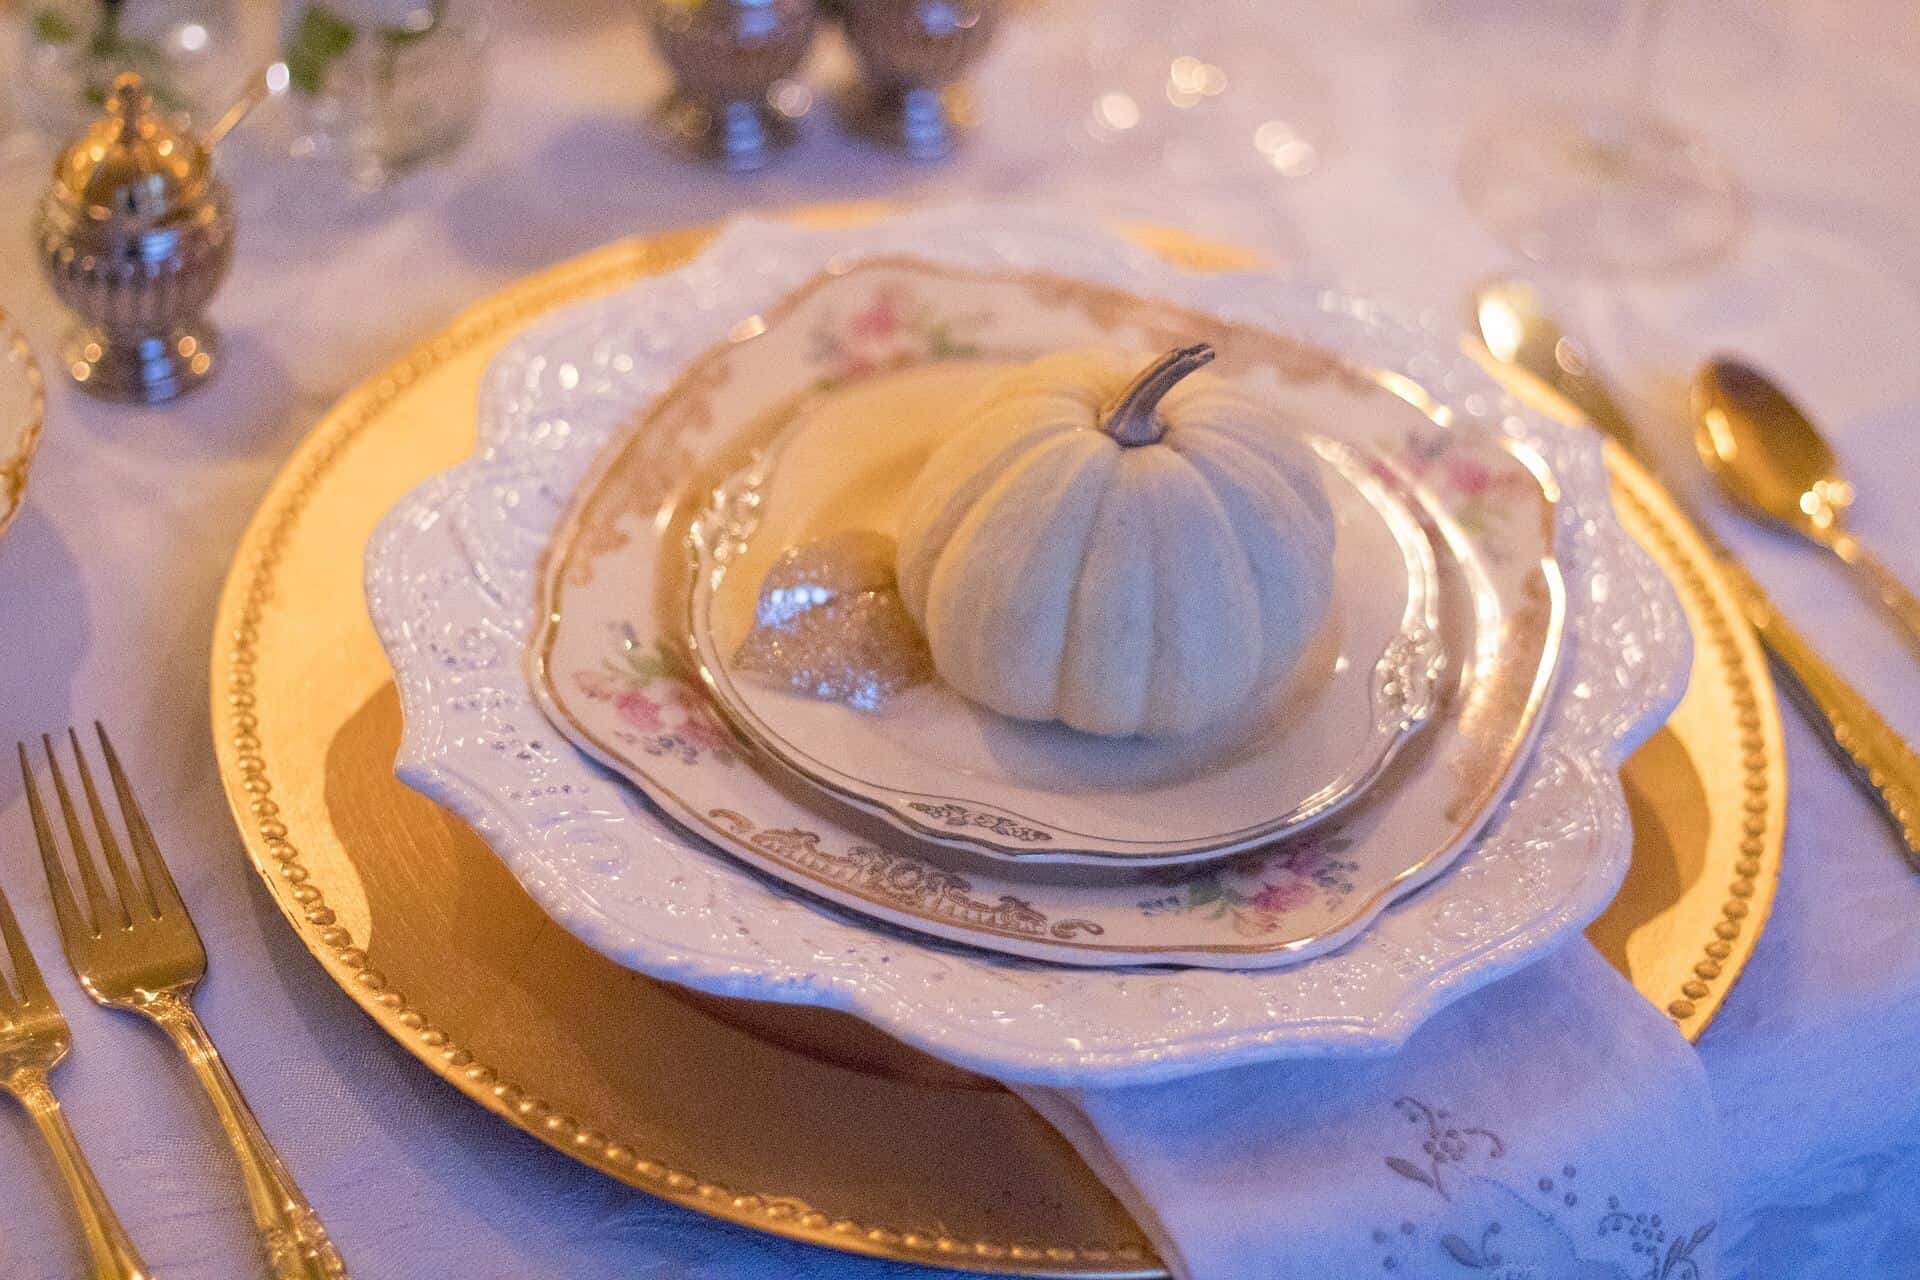 How To Host The Holidays Even If You Can't Cook #saveeandsavory #holidays #hosting #cooking #thanksgiving #christmas